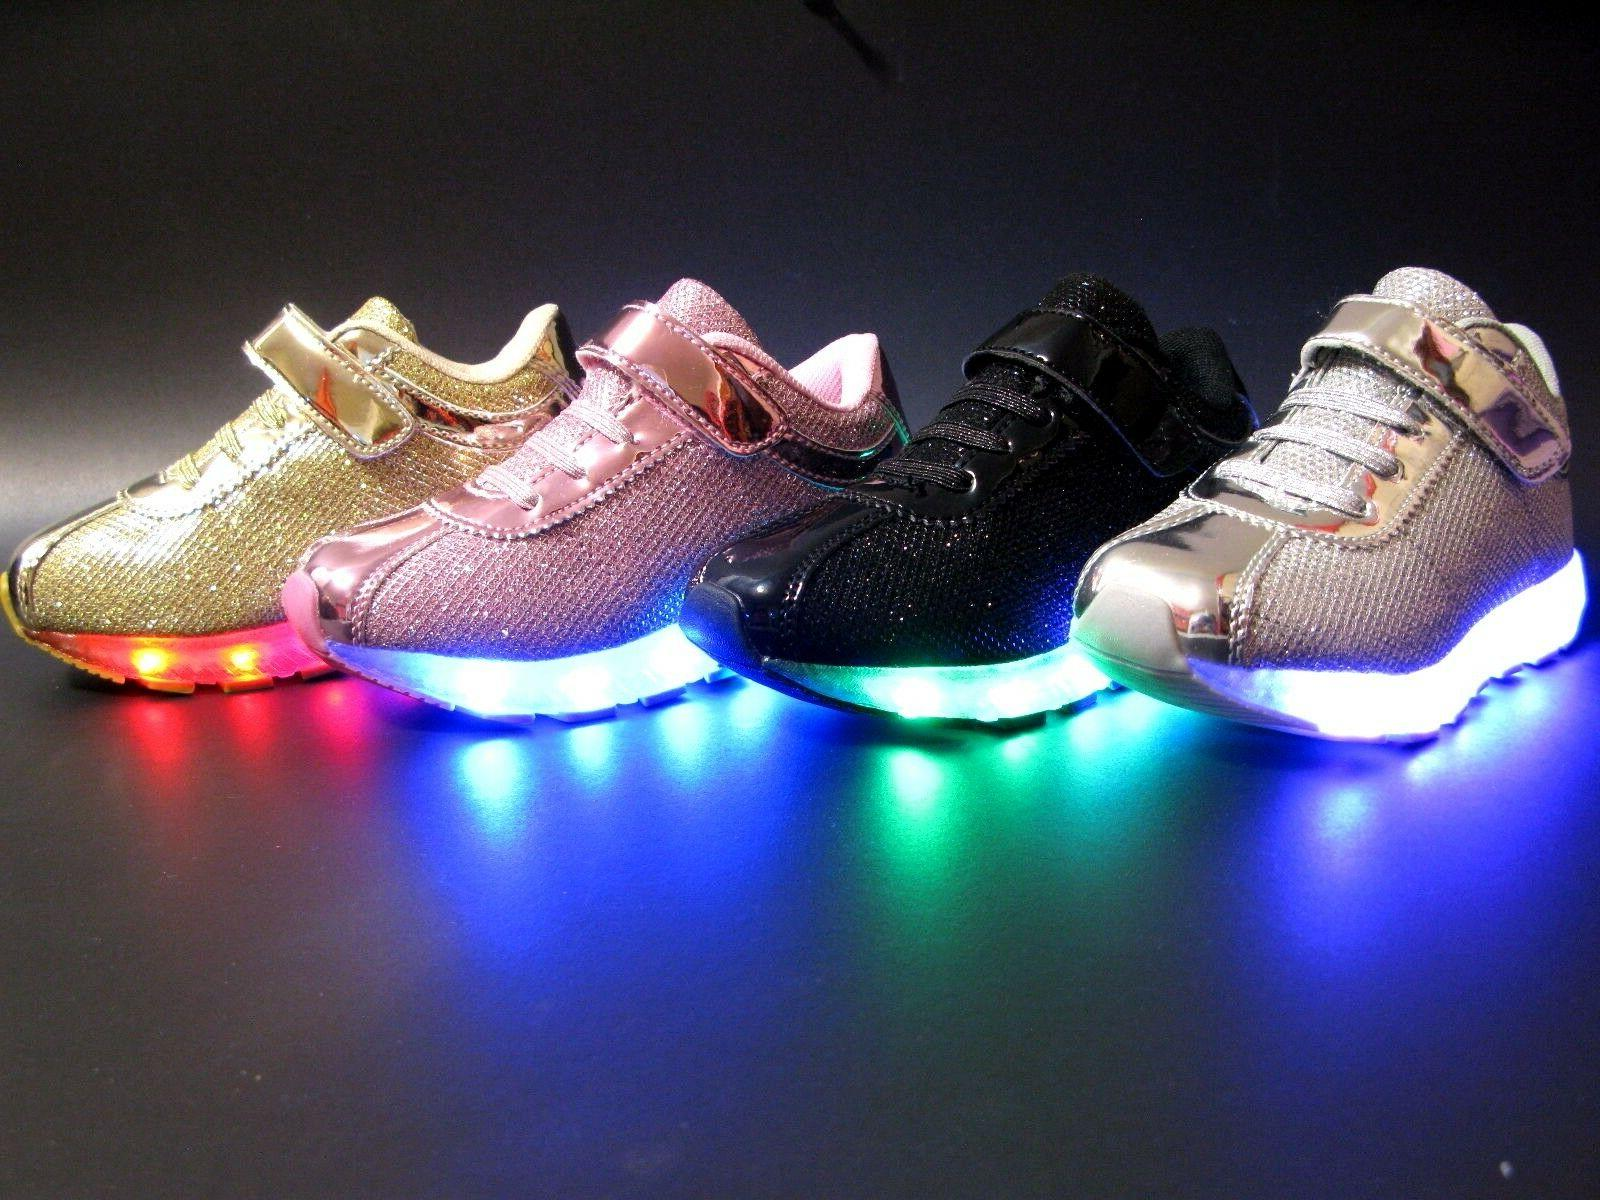 New Baby Toddler Girls And Kids Youth Light Up Shoes Recharg